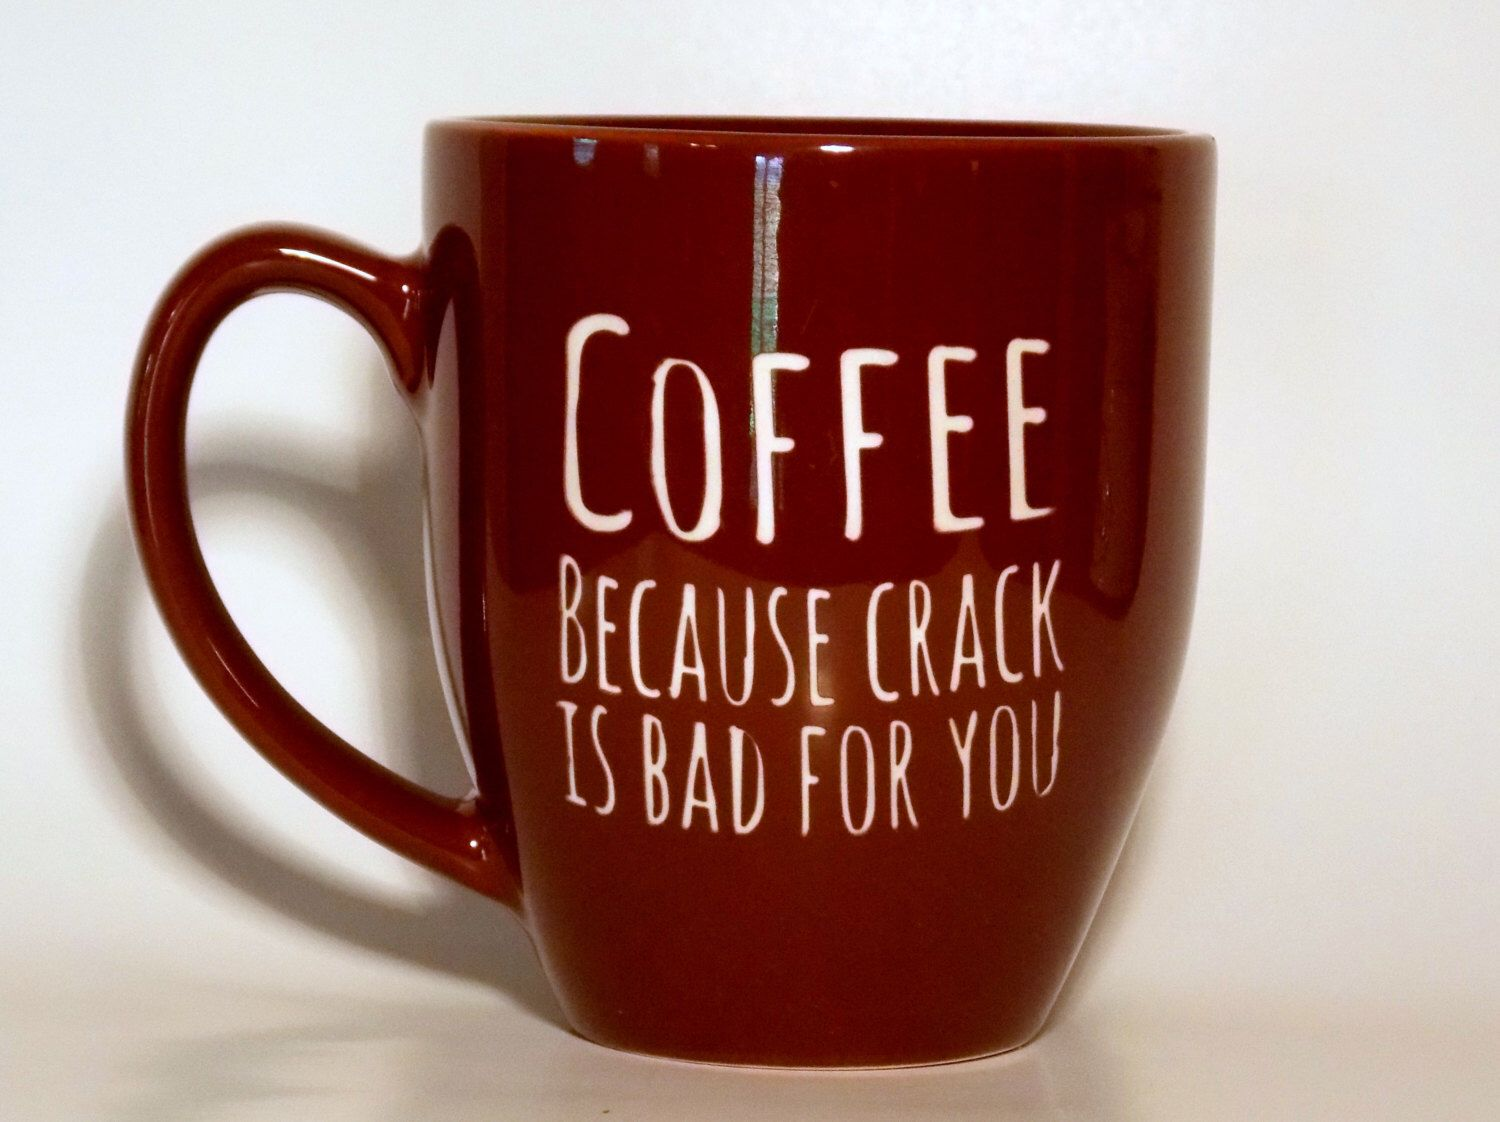 Interesting Coffee Cups Unique Coffee Mug Quotcoffee Because Crack Is Bad For You